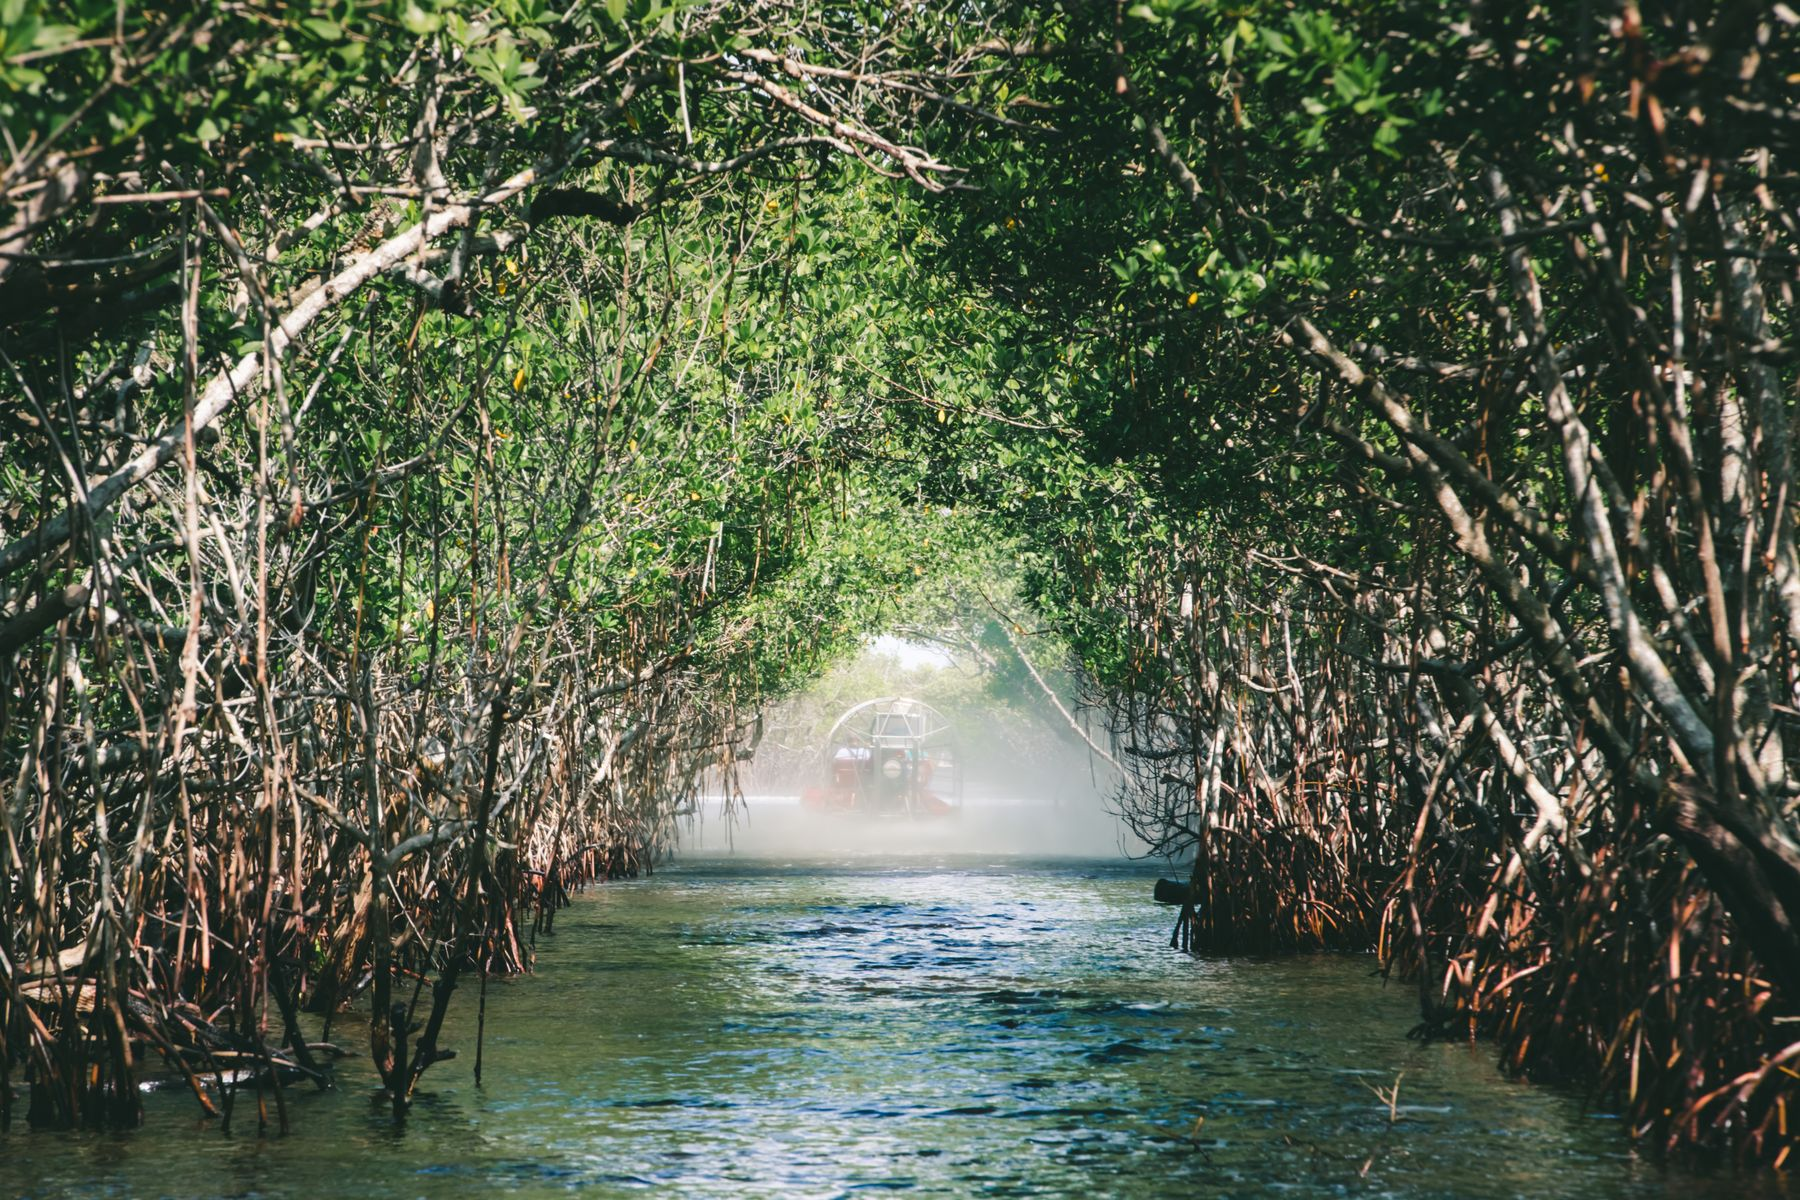 Mangrove trees over water with an airboat in the background. A destination for the National Parks Pass